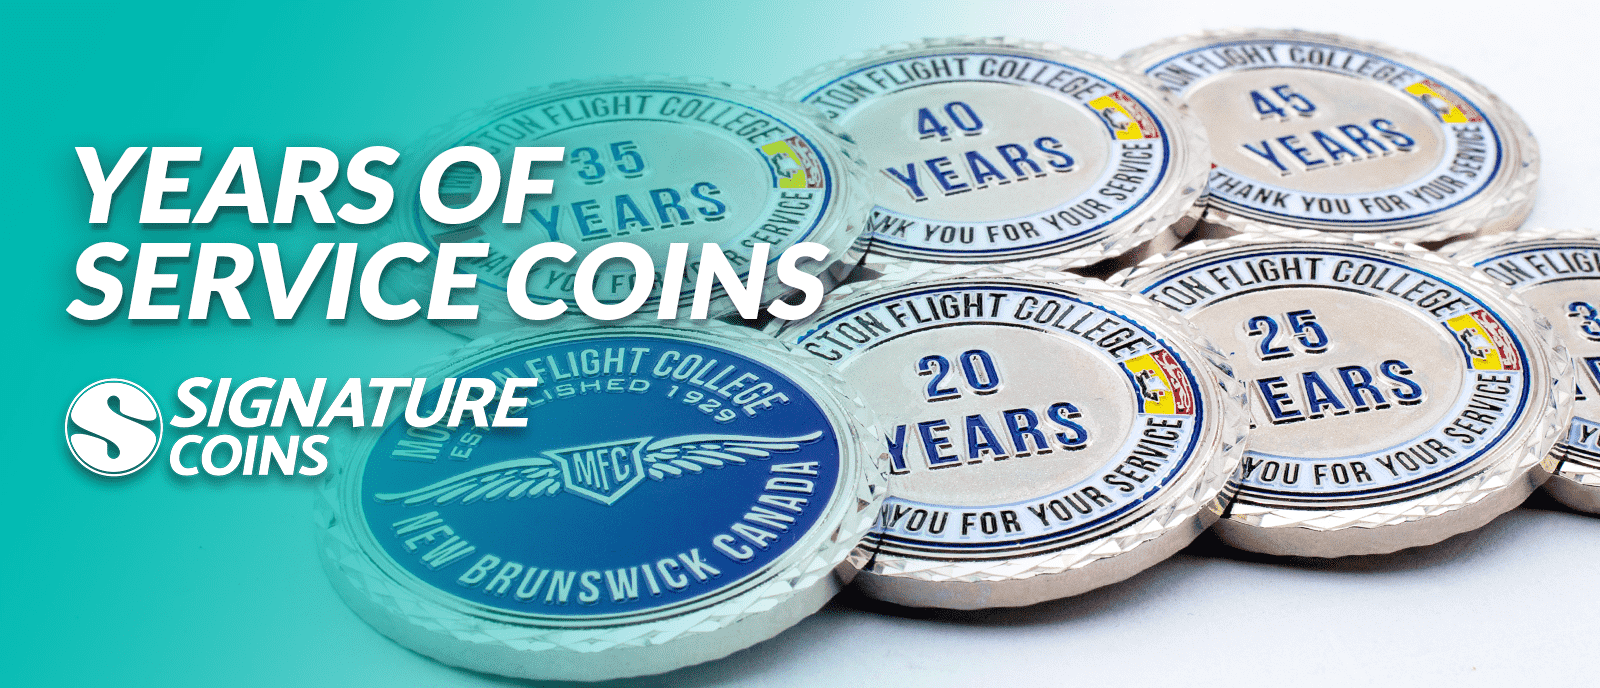 /years-of-service-coins